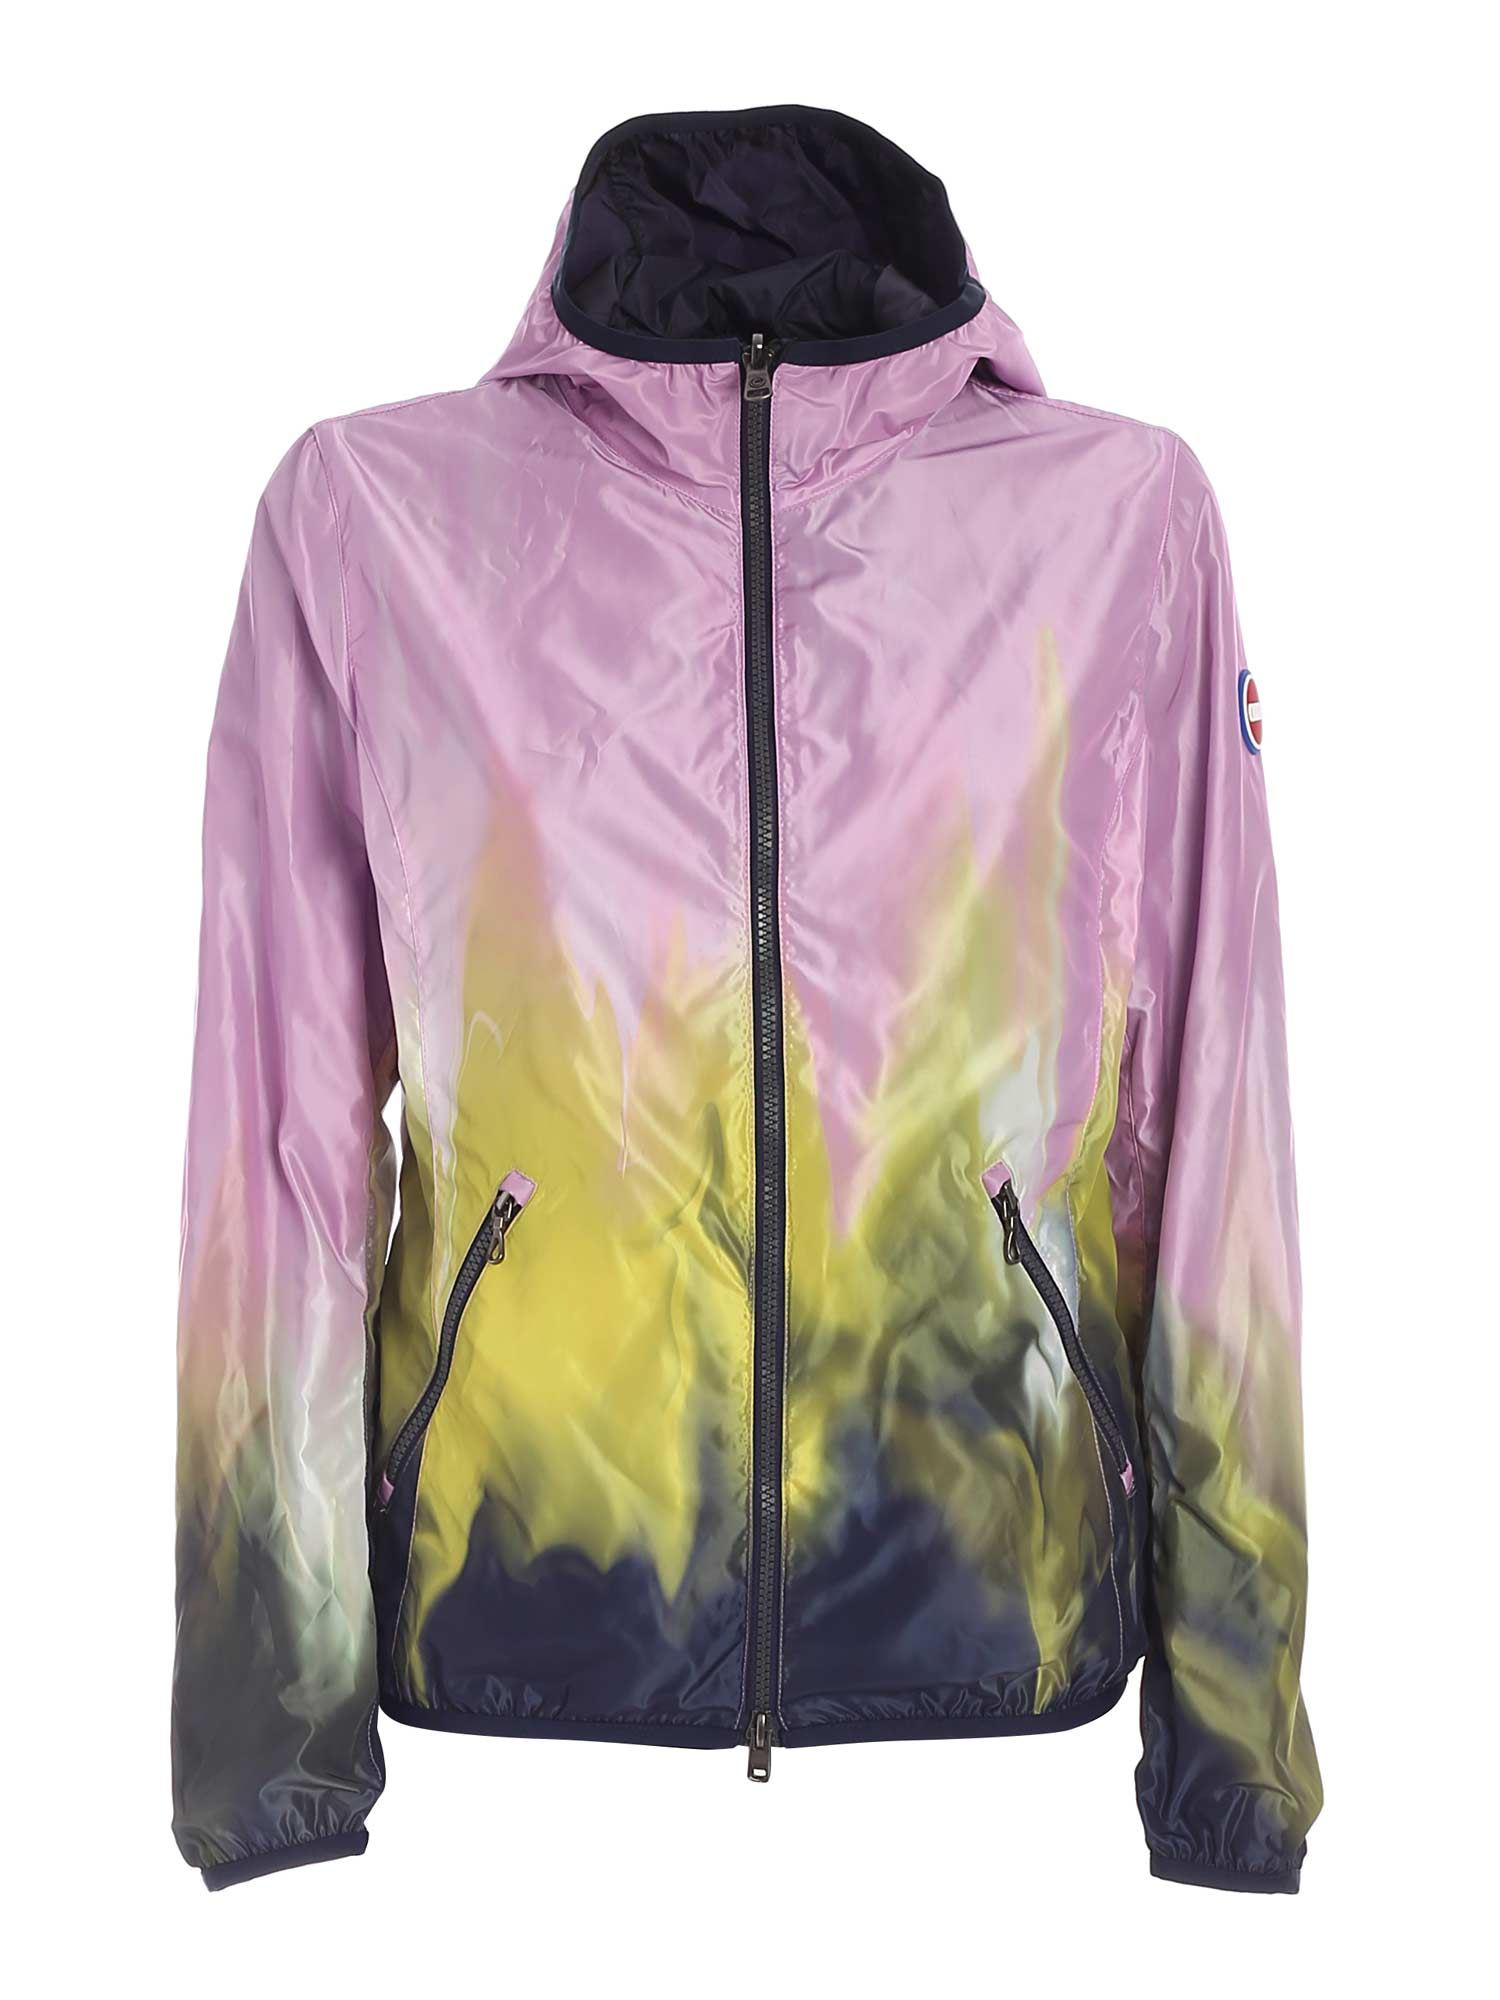 Colmar Originals NOTE JACKET IN LILAC, YELLOW AND BLUE